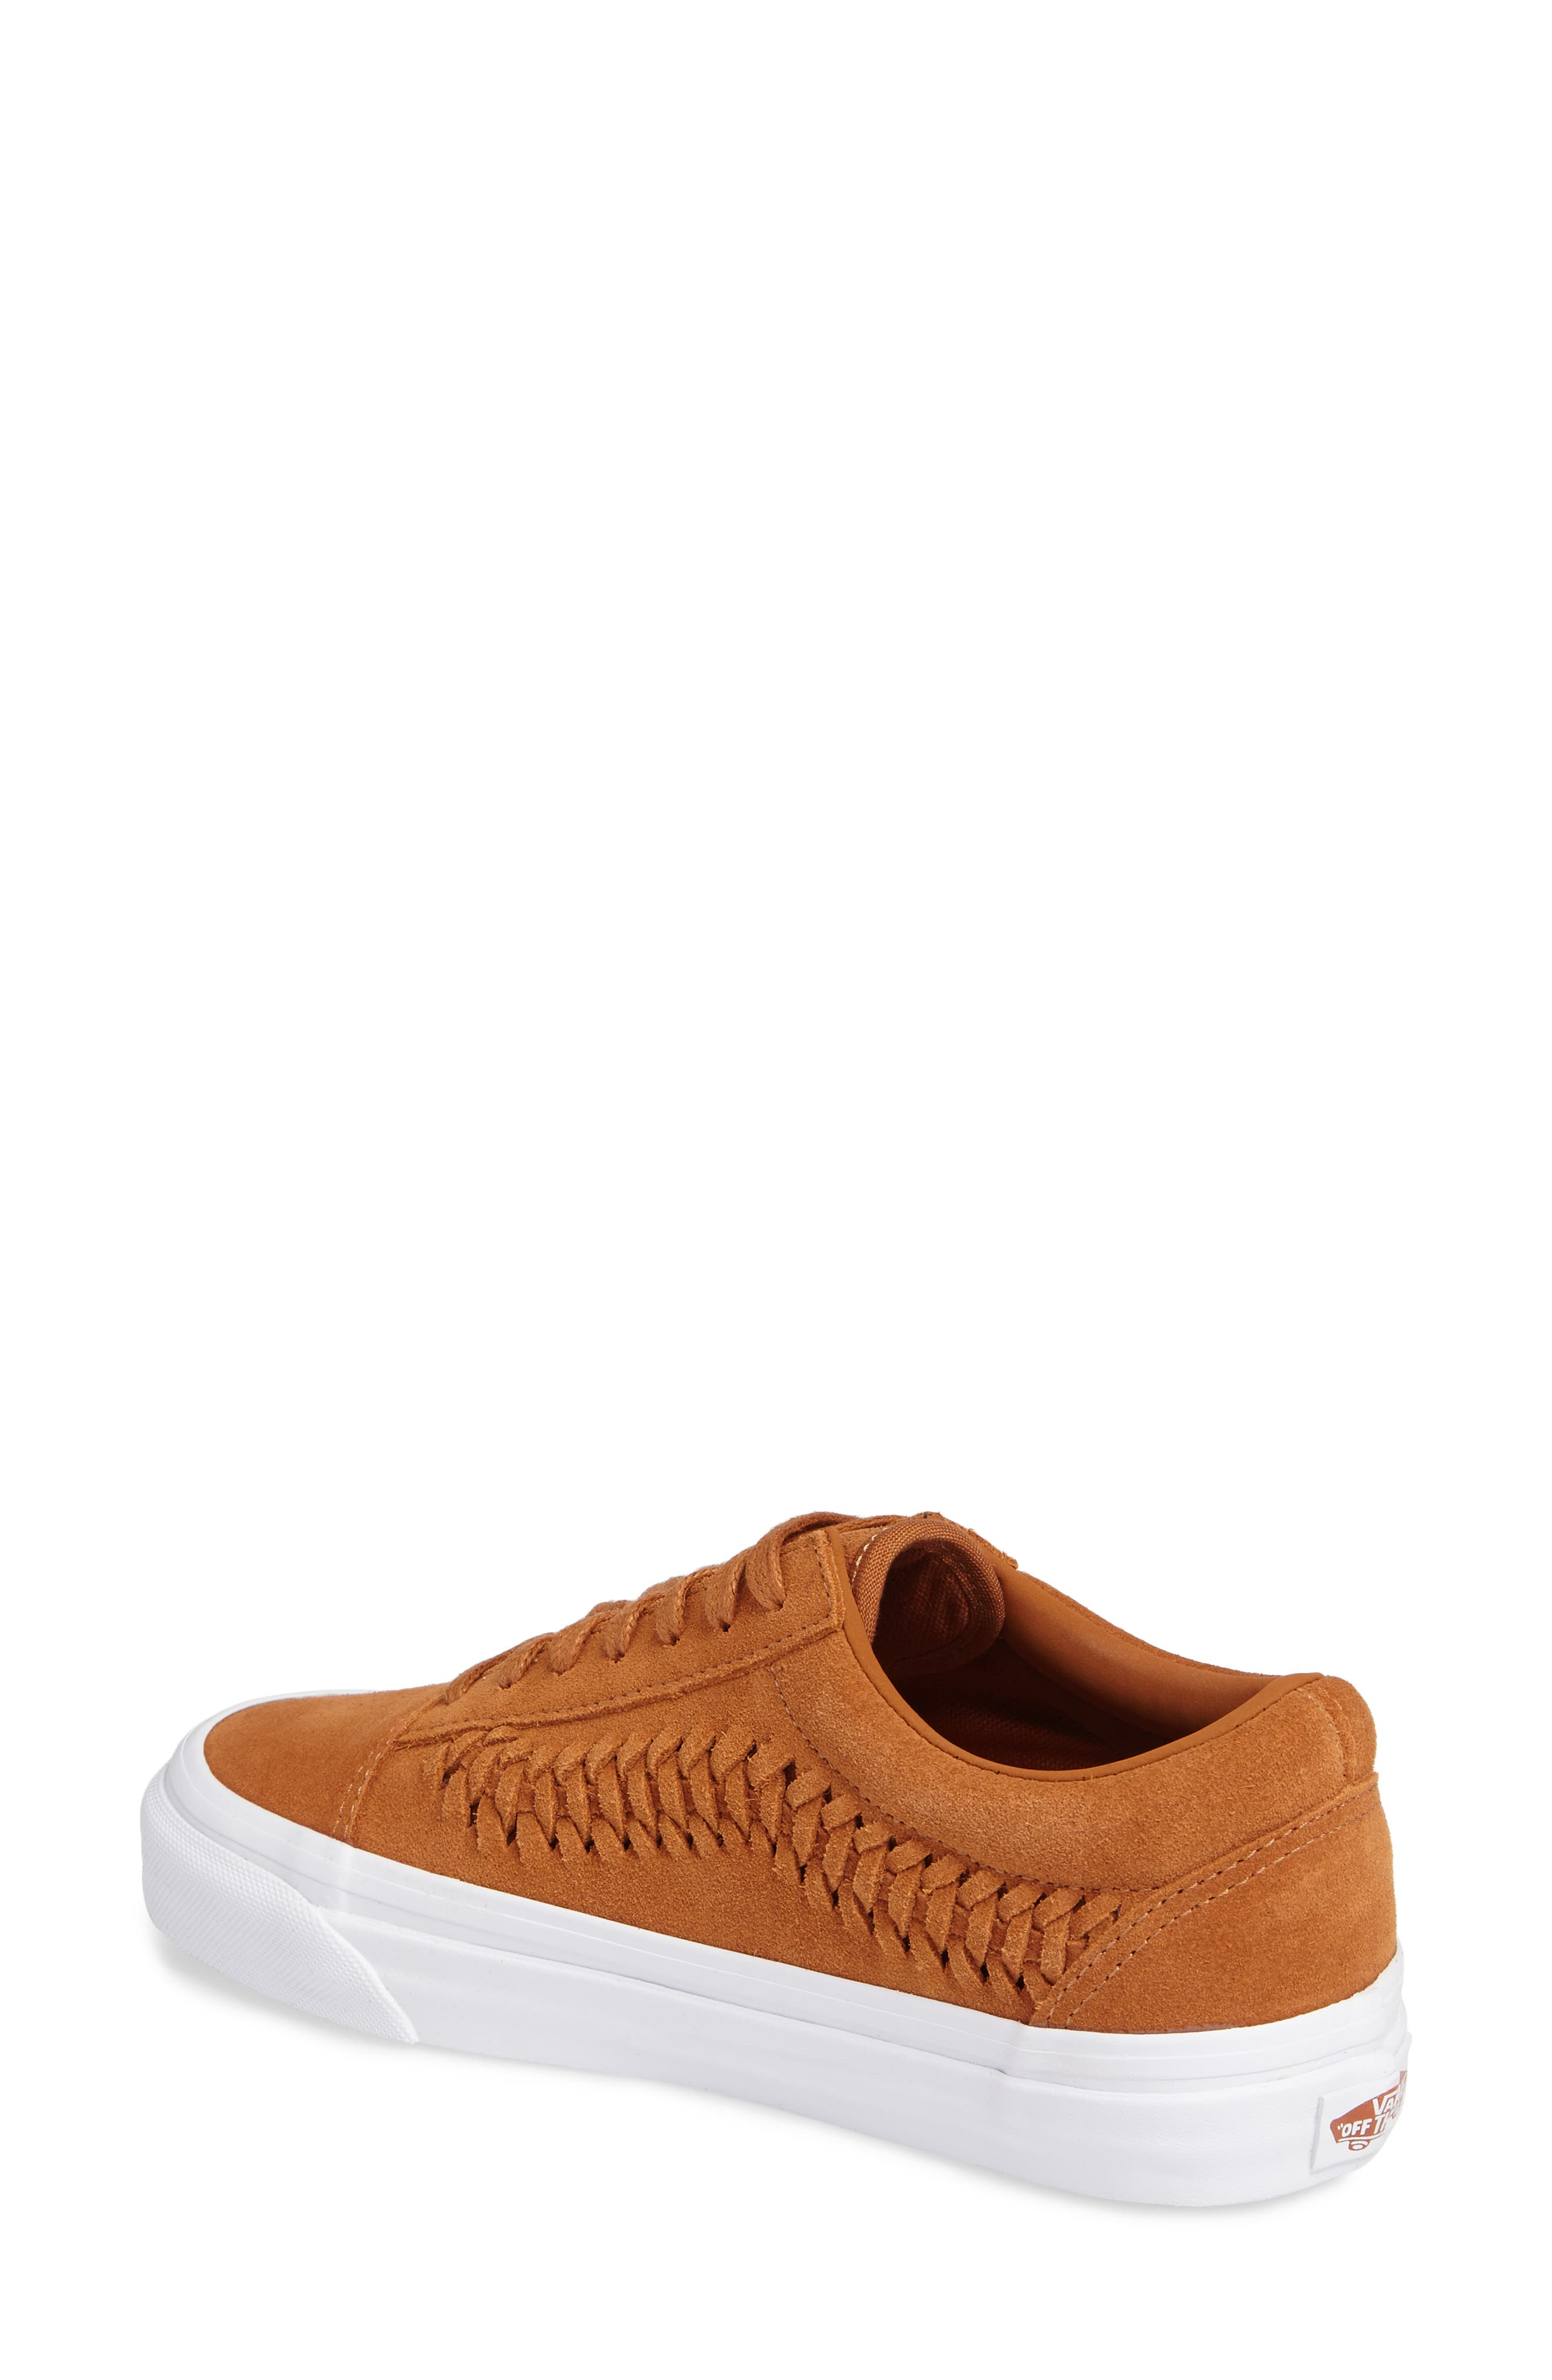 Alternate Image 2  - Vans Old Skool Weave DX Sneaker (Women)